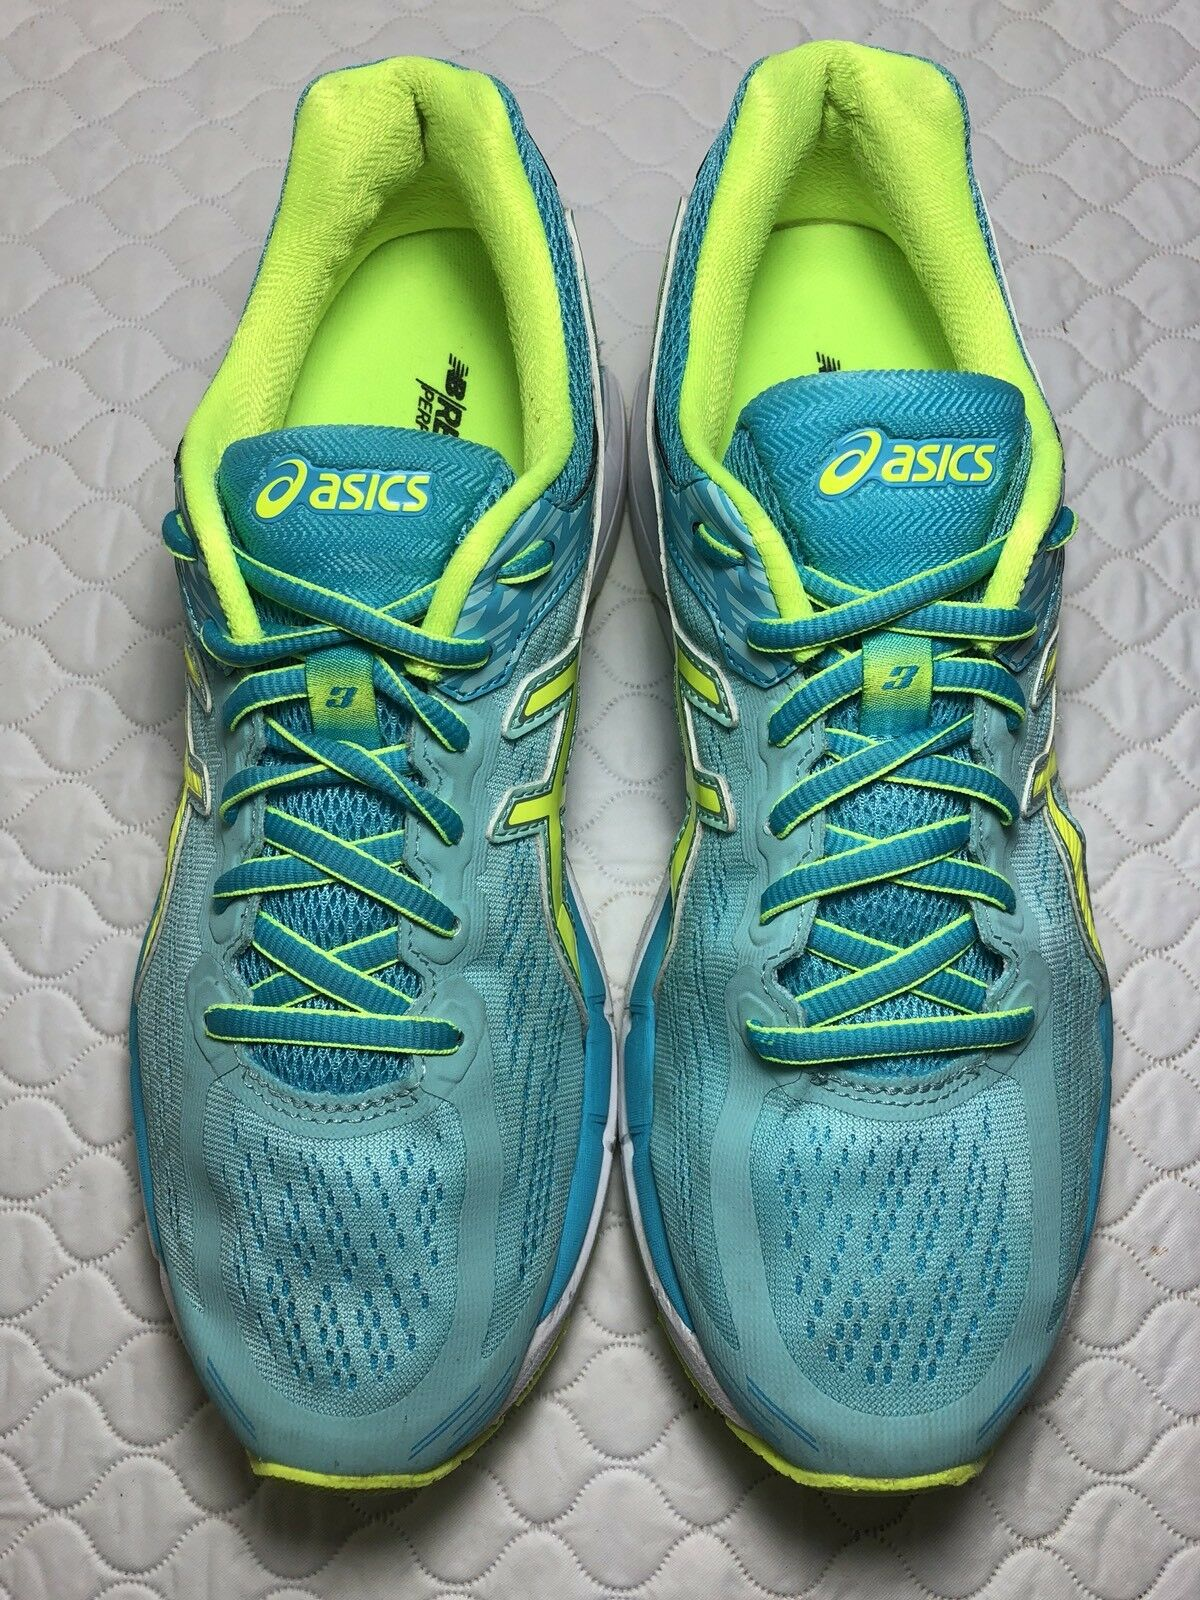 Asics Gel Pursue Women's Running Shoes Aqua/Yellow Comfortable best-selling model of the brand